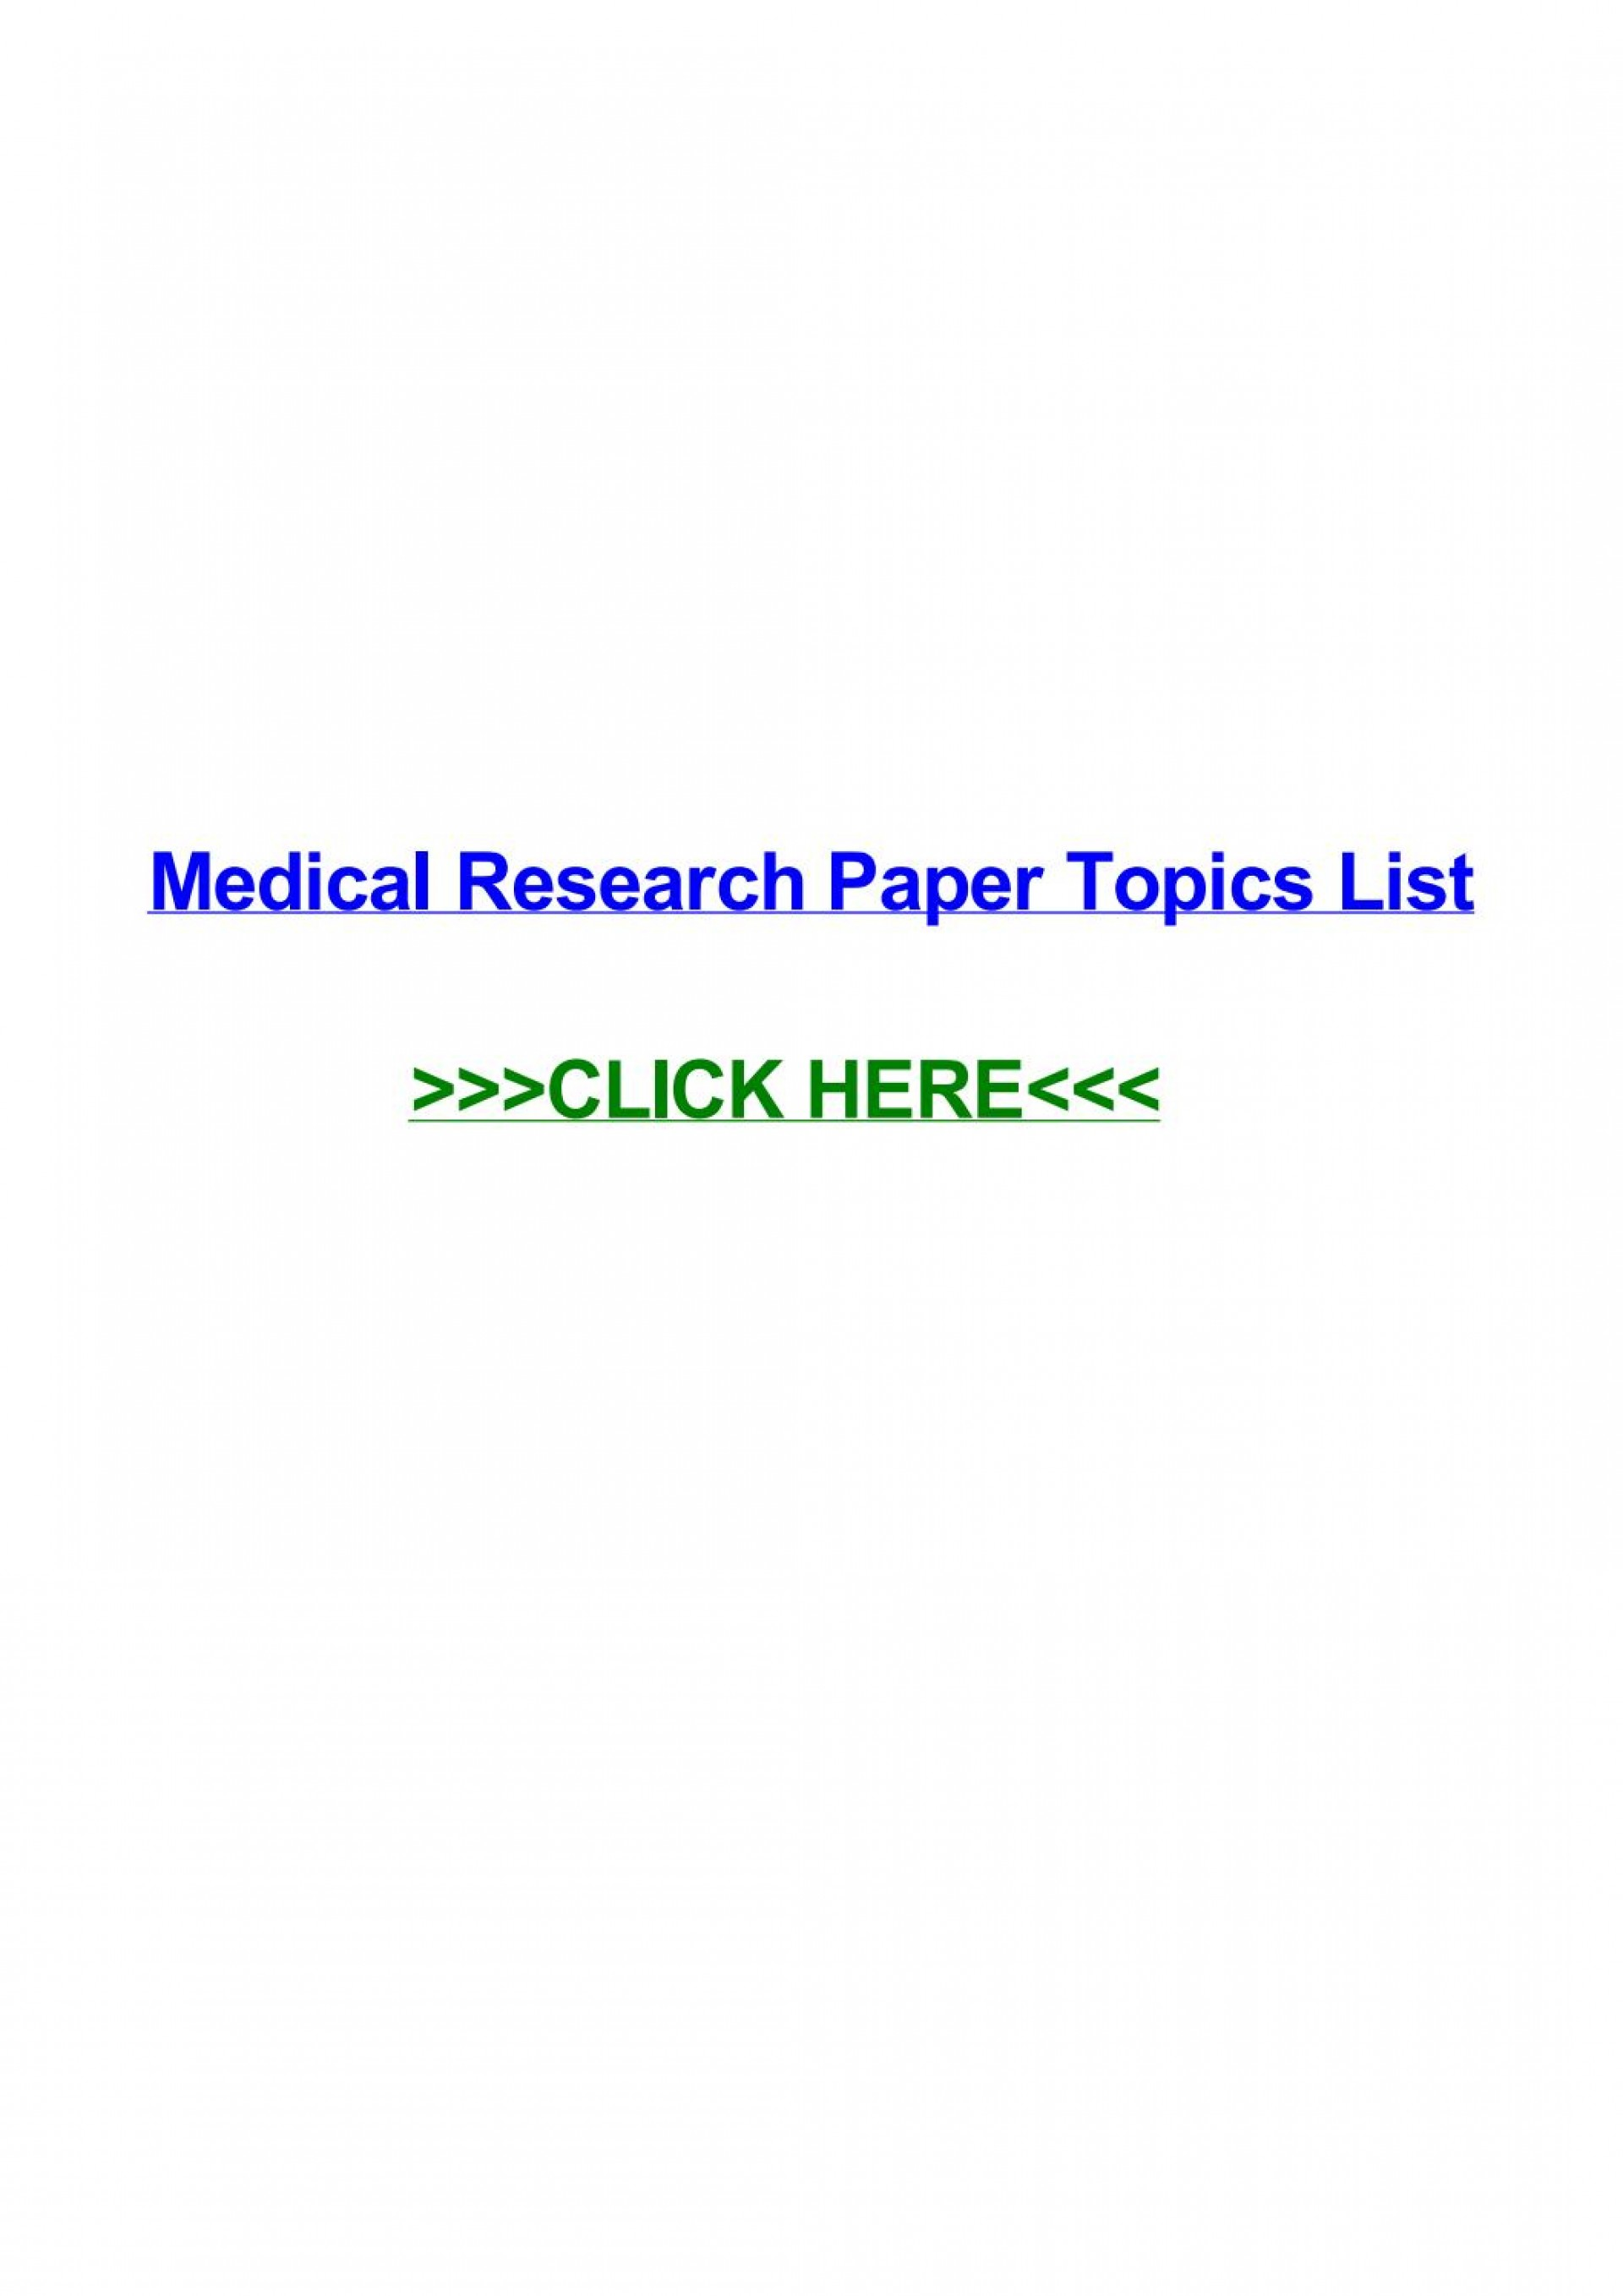 009 Medical Topics For Research Paper Page 1 Imposing Argumentative Interesting 1920